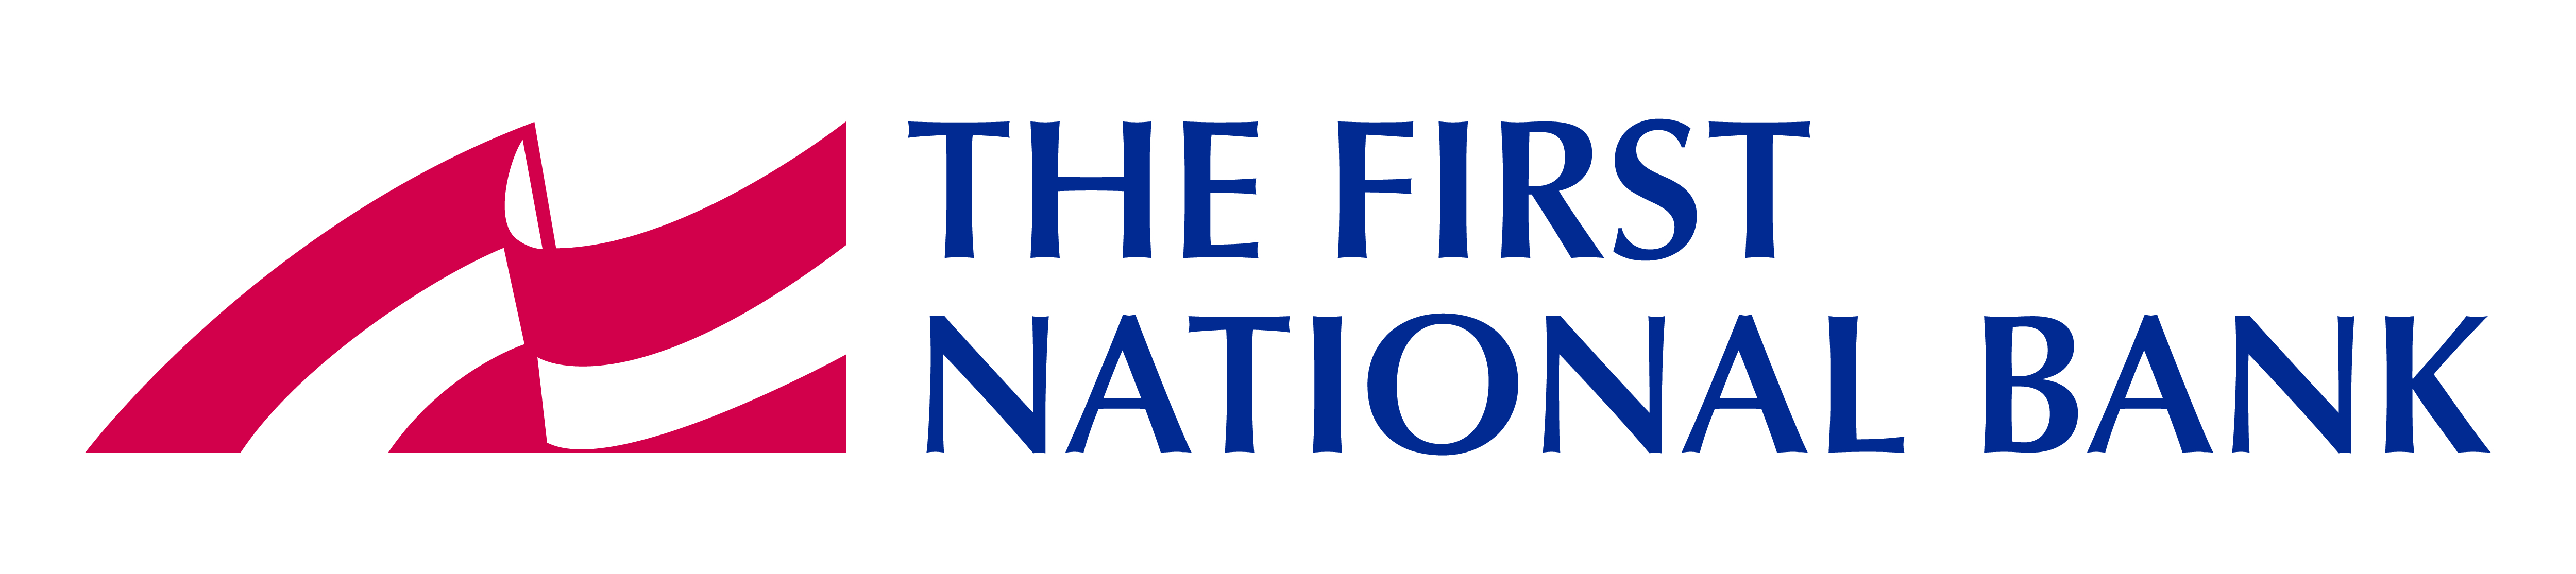 First National Bank | Wabash County Chamber